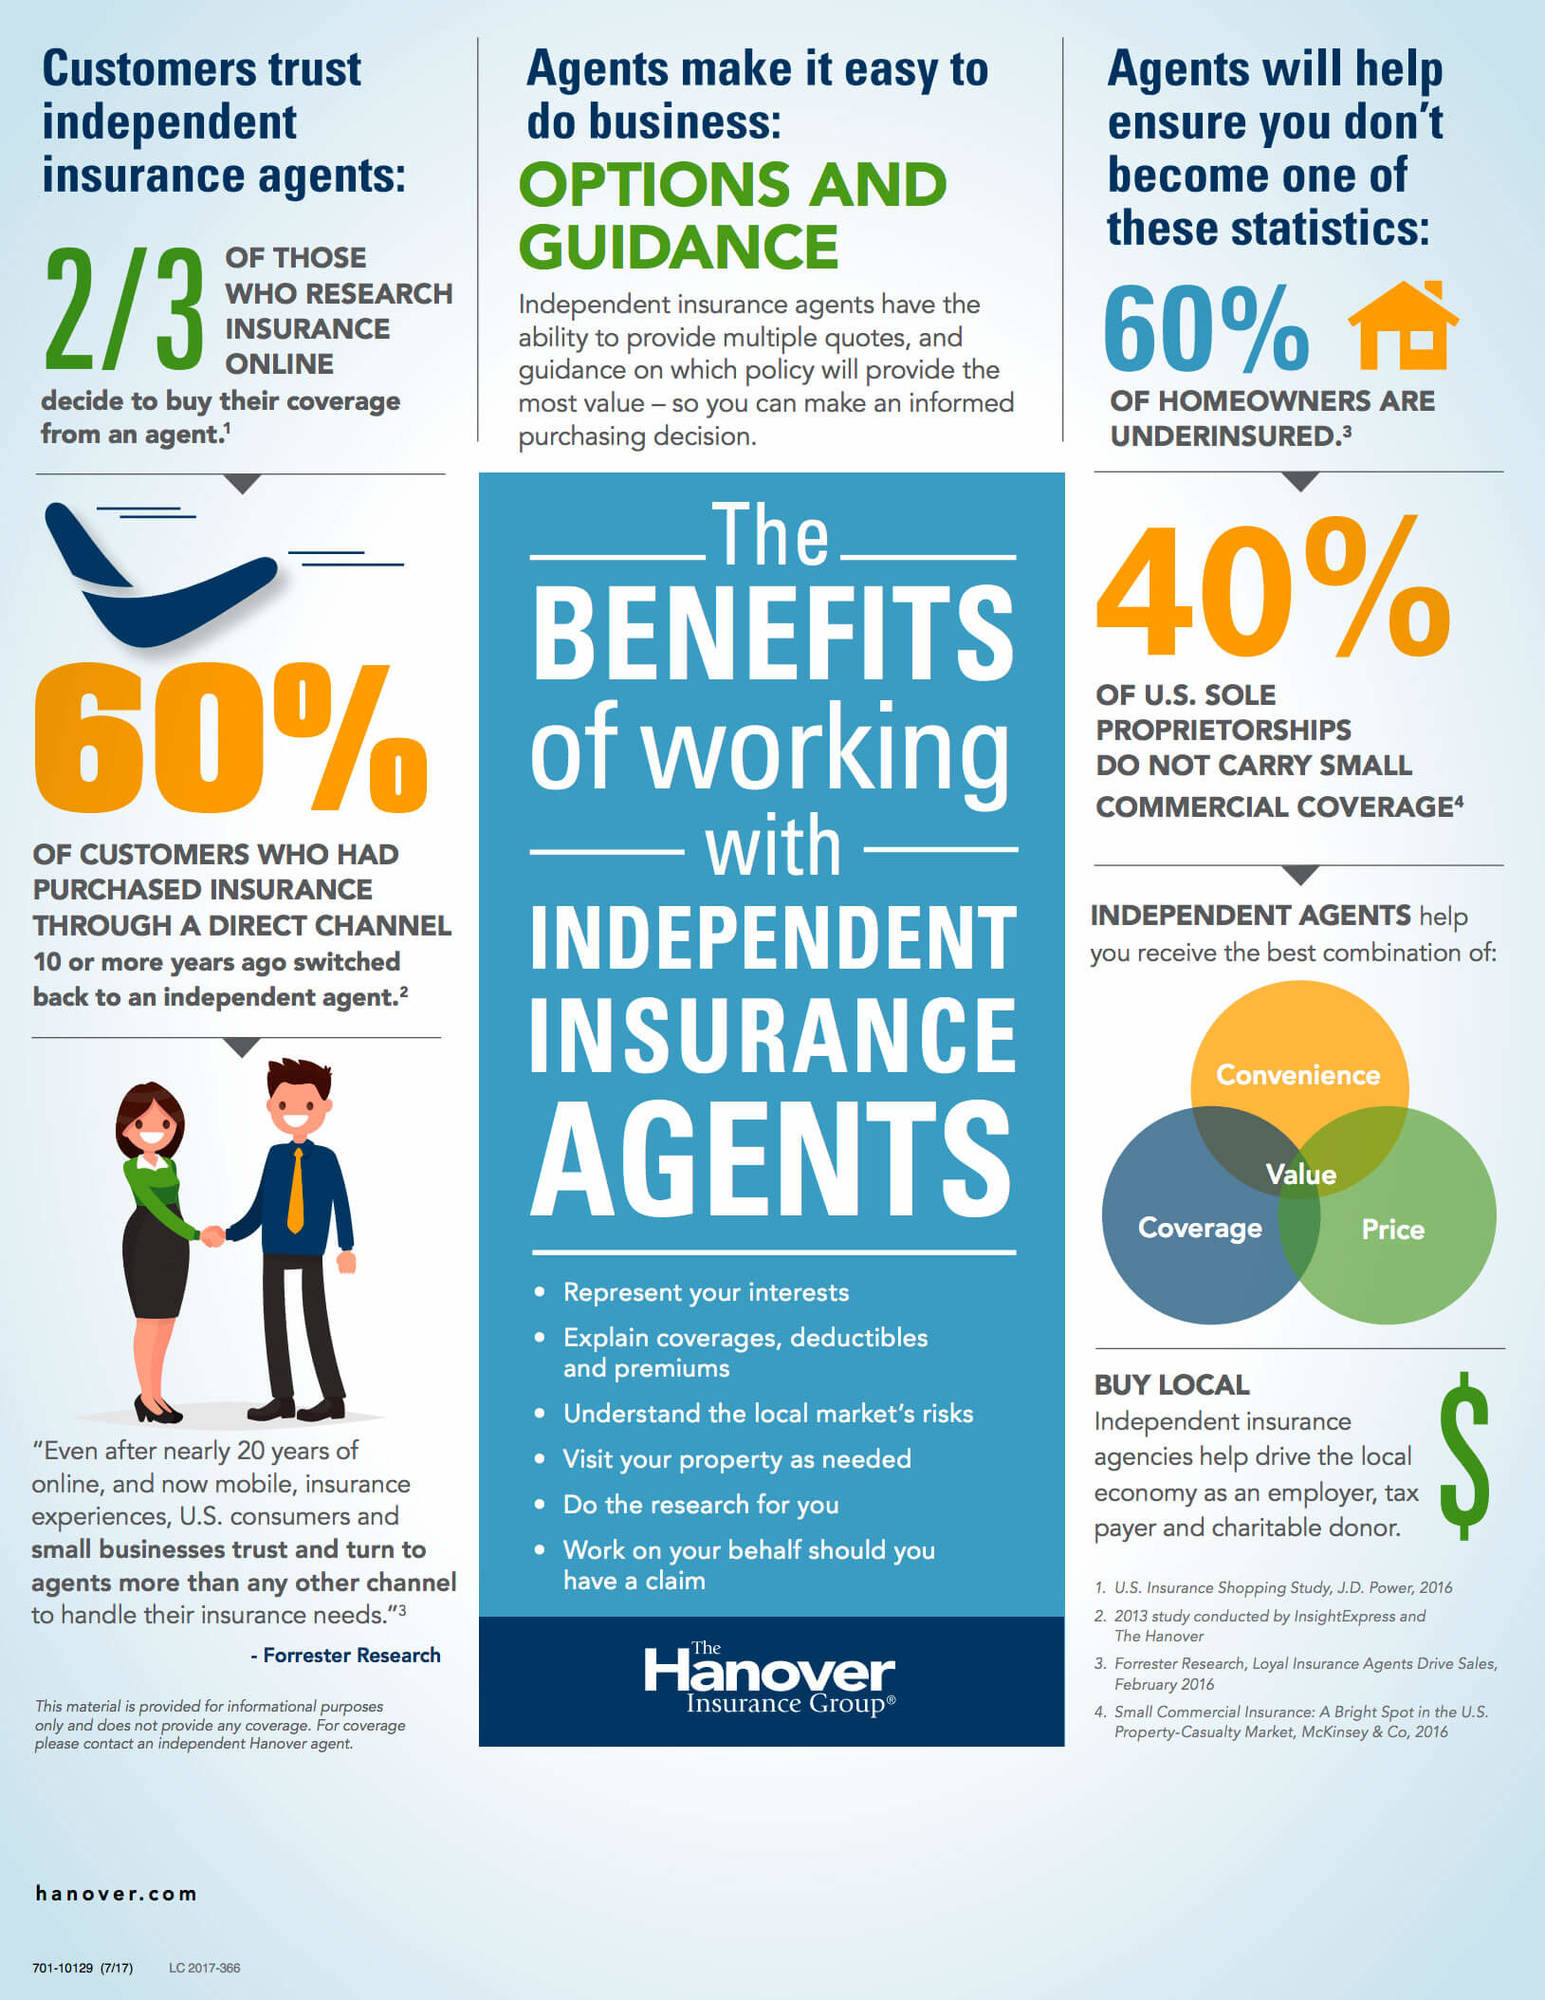 The Benefits of Working with Independent Insurance Agents